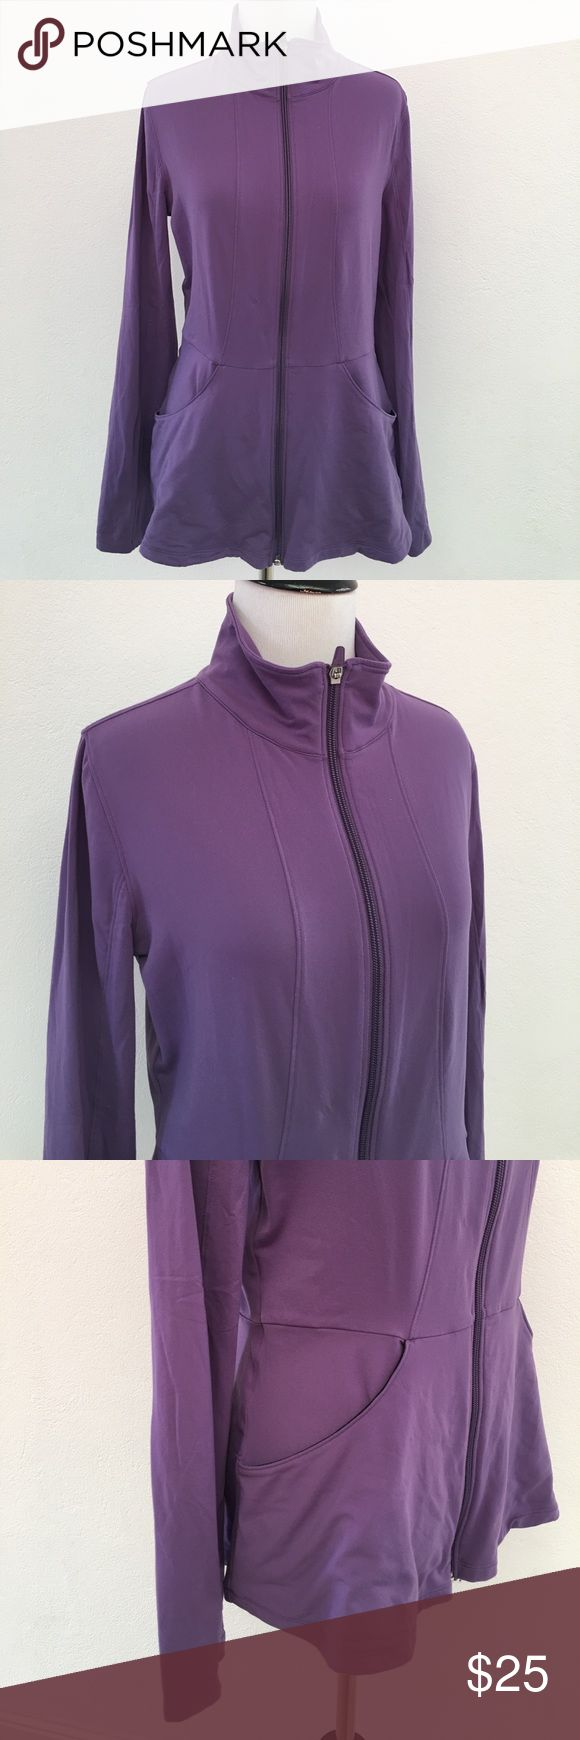 Lucy Full Long Sleeve Purple Zip Up Top Size M Preowned authentic Lucy Full Long Sleeve Purple Zip Up Top Size M. Please look at pictures for better reference. Happy shopping! Lucy Tops